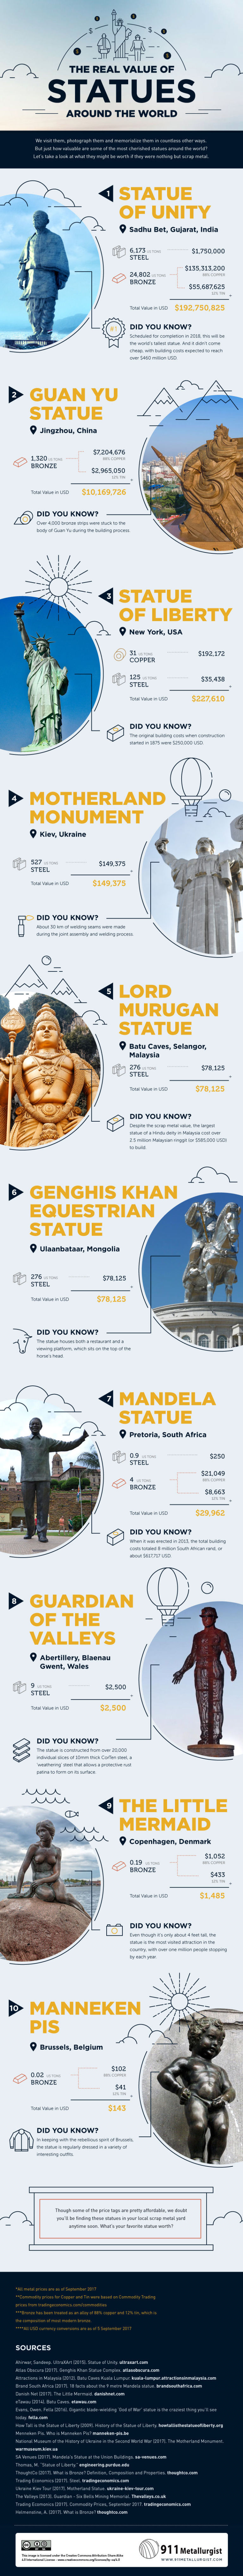 famous statues value infographic